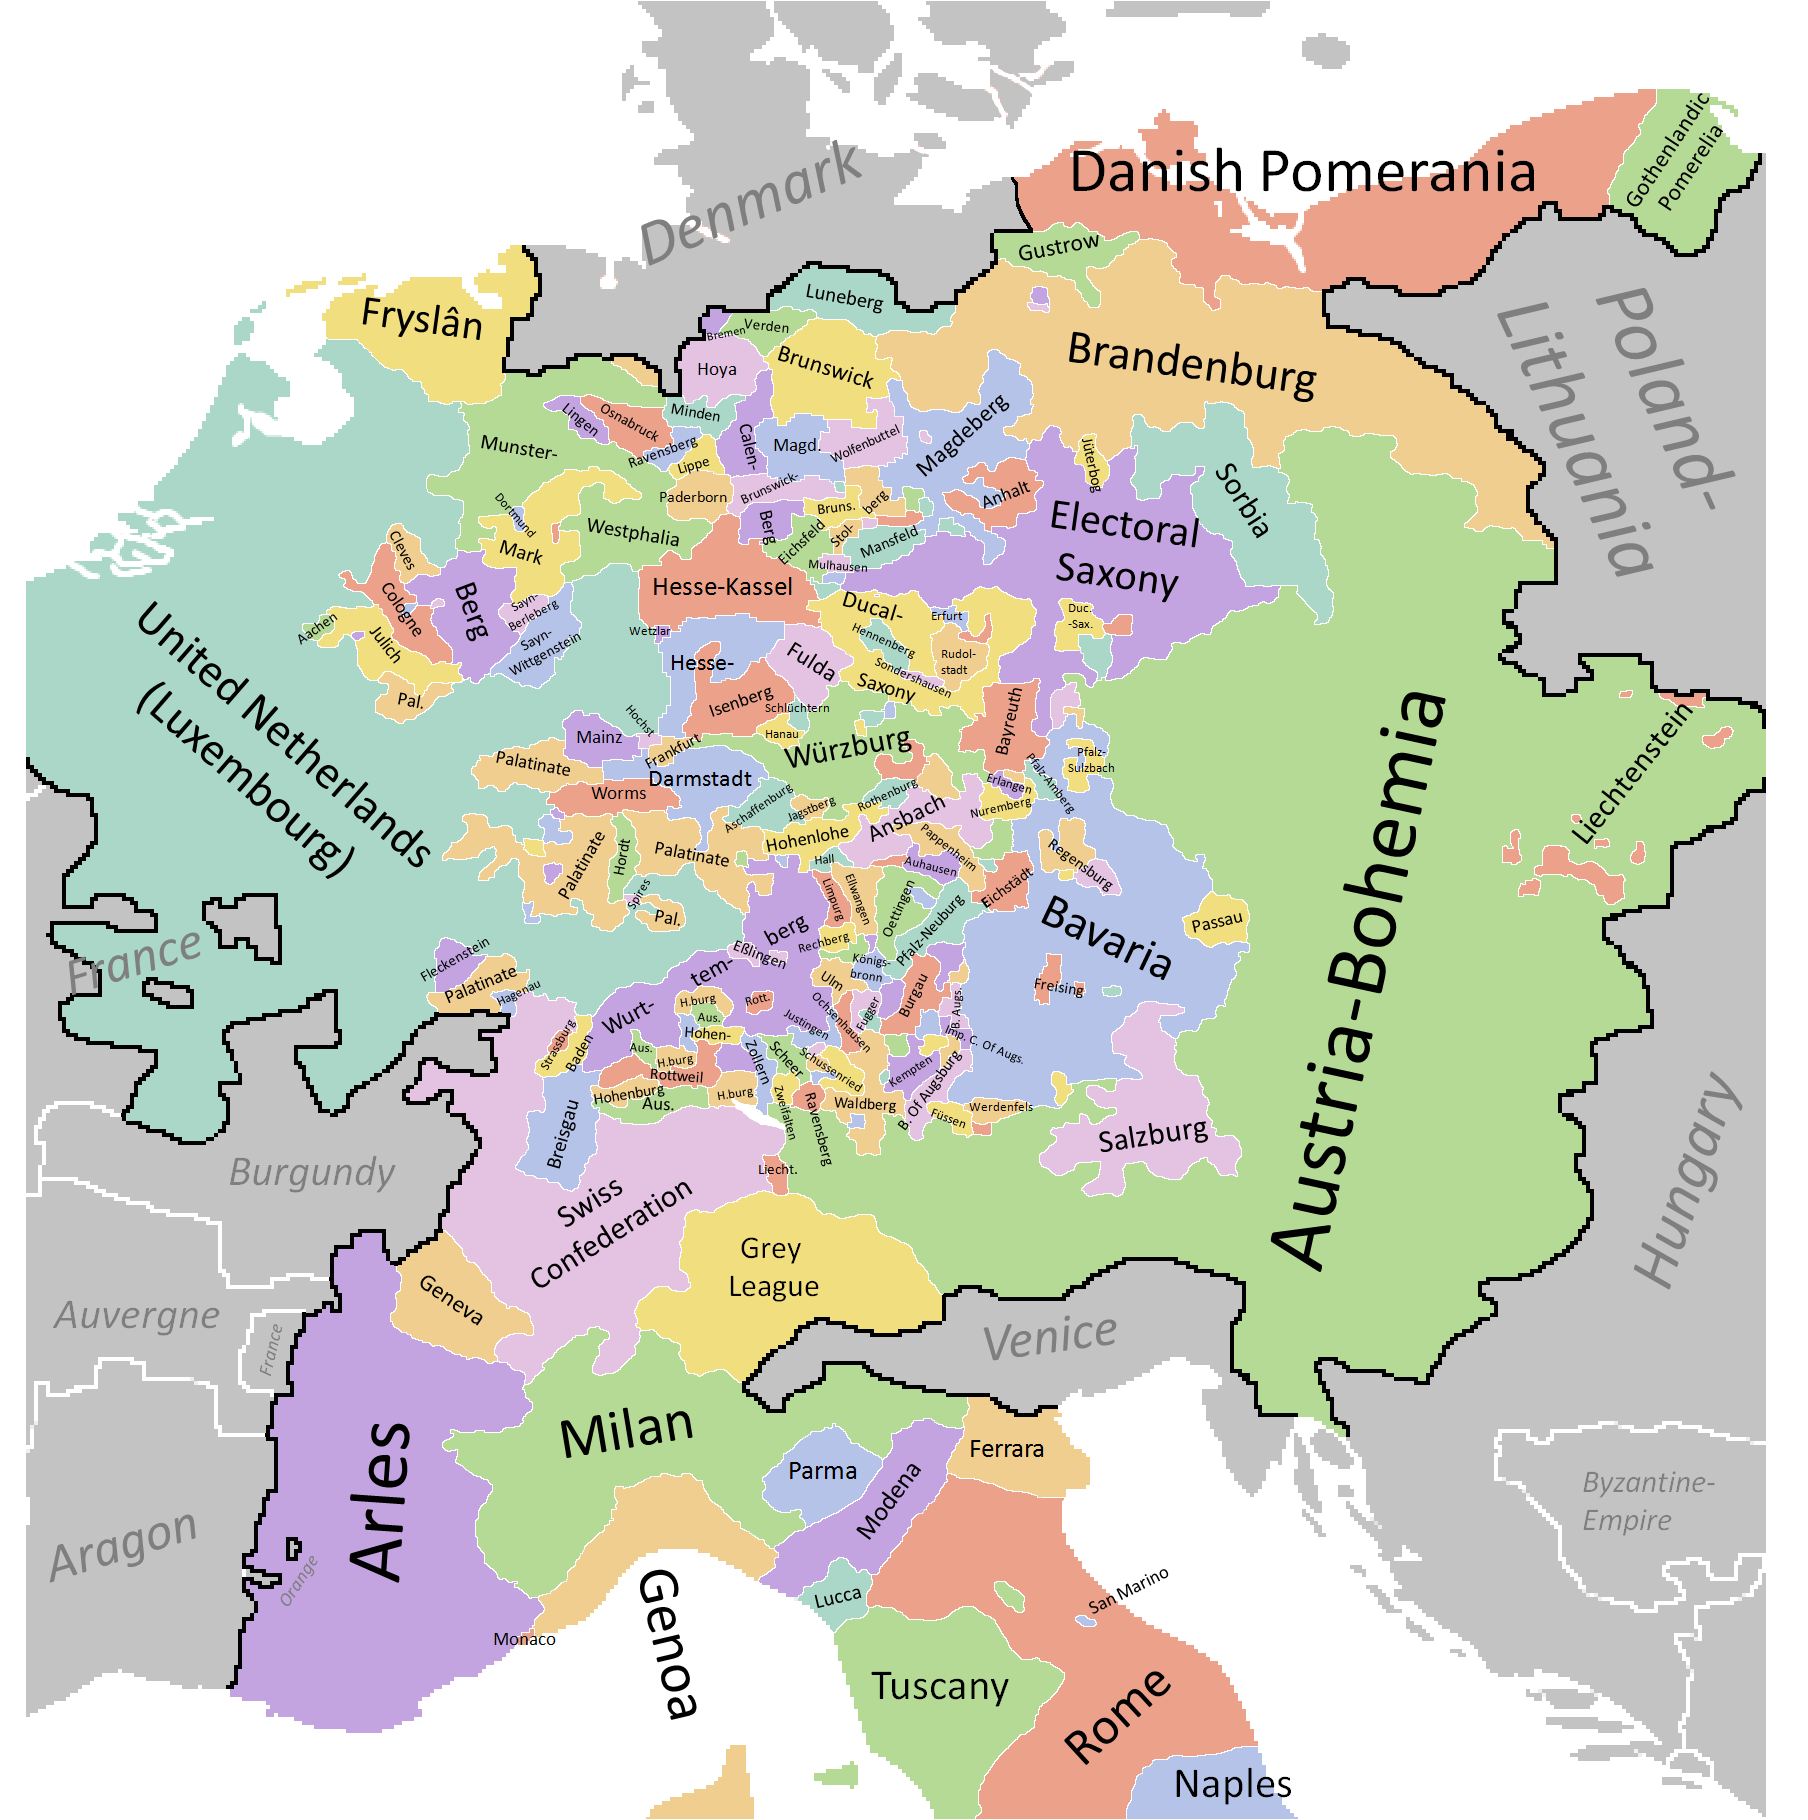 holy roman empire the lutheran revolt Martin luther's reformation sharply divided german princes within the holy roman empire, leading to conflict between the catholic hapsburg emperors and the princes (primarily in the northern part of the empire) who adopted lutheran protestantism.